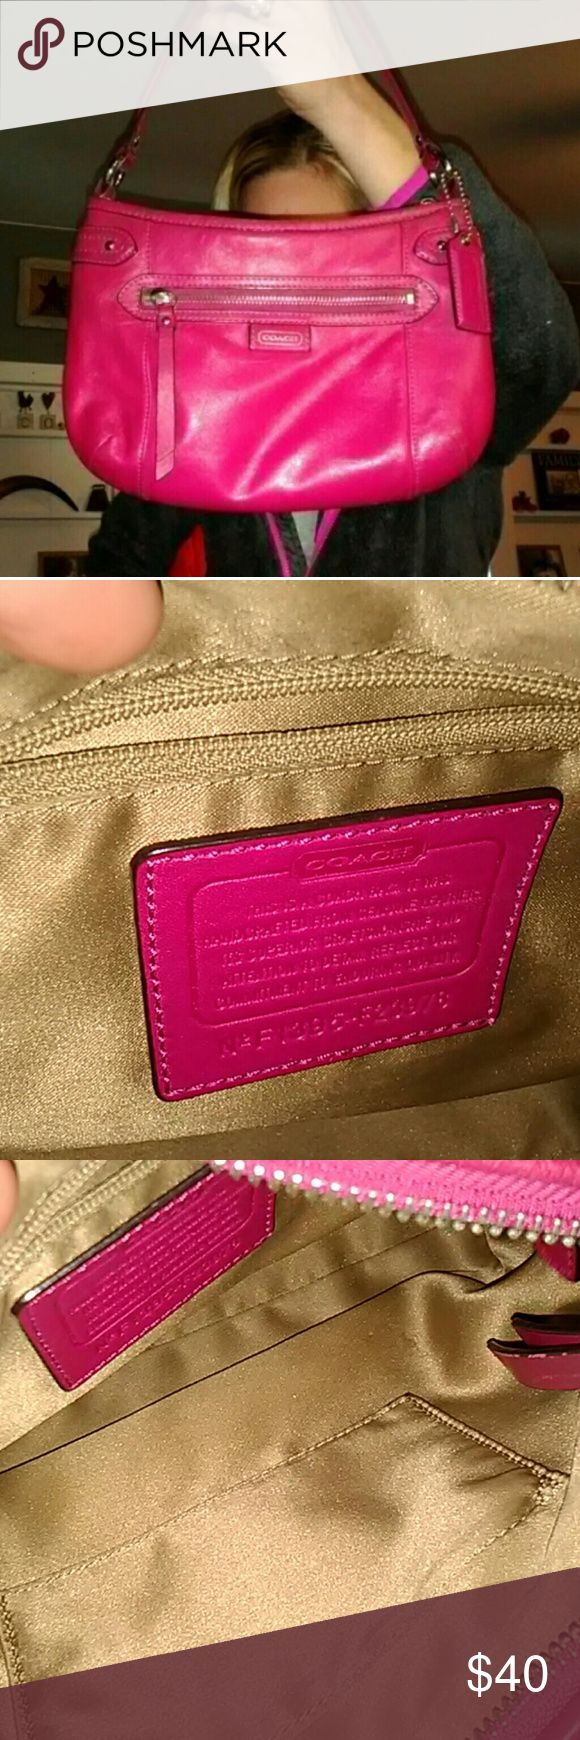 Bright Pink Coach Leather Purse Really bright pink Perfect size bag, zipper works fine Pink hangtag Inside is super clean  Outside has light use adorable bag Ships quick Smoke free home Coach Bags Shoulder Bags